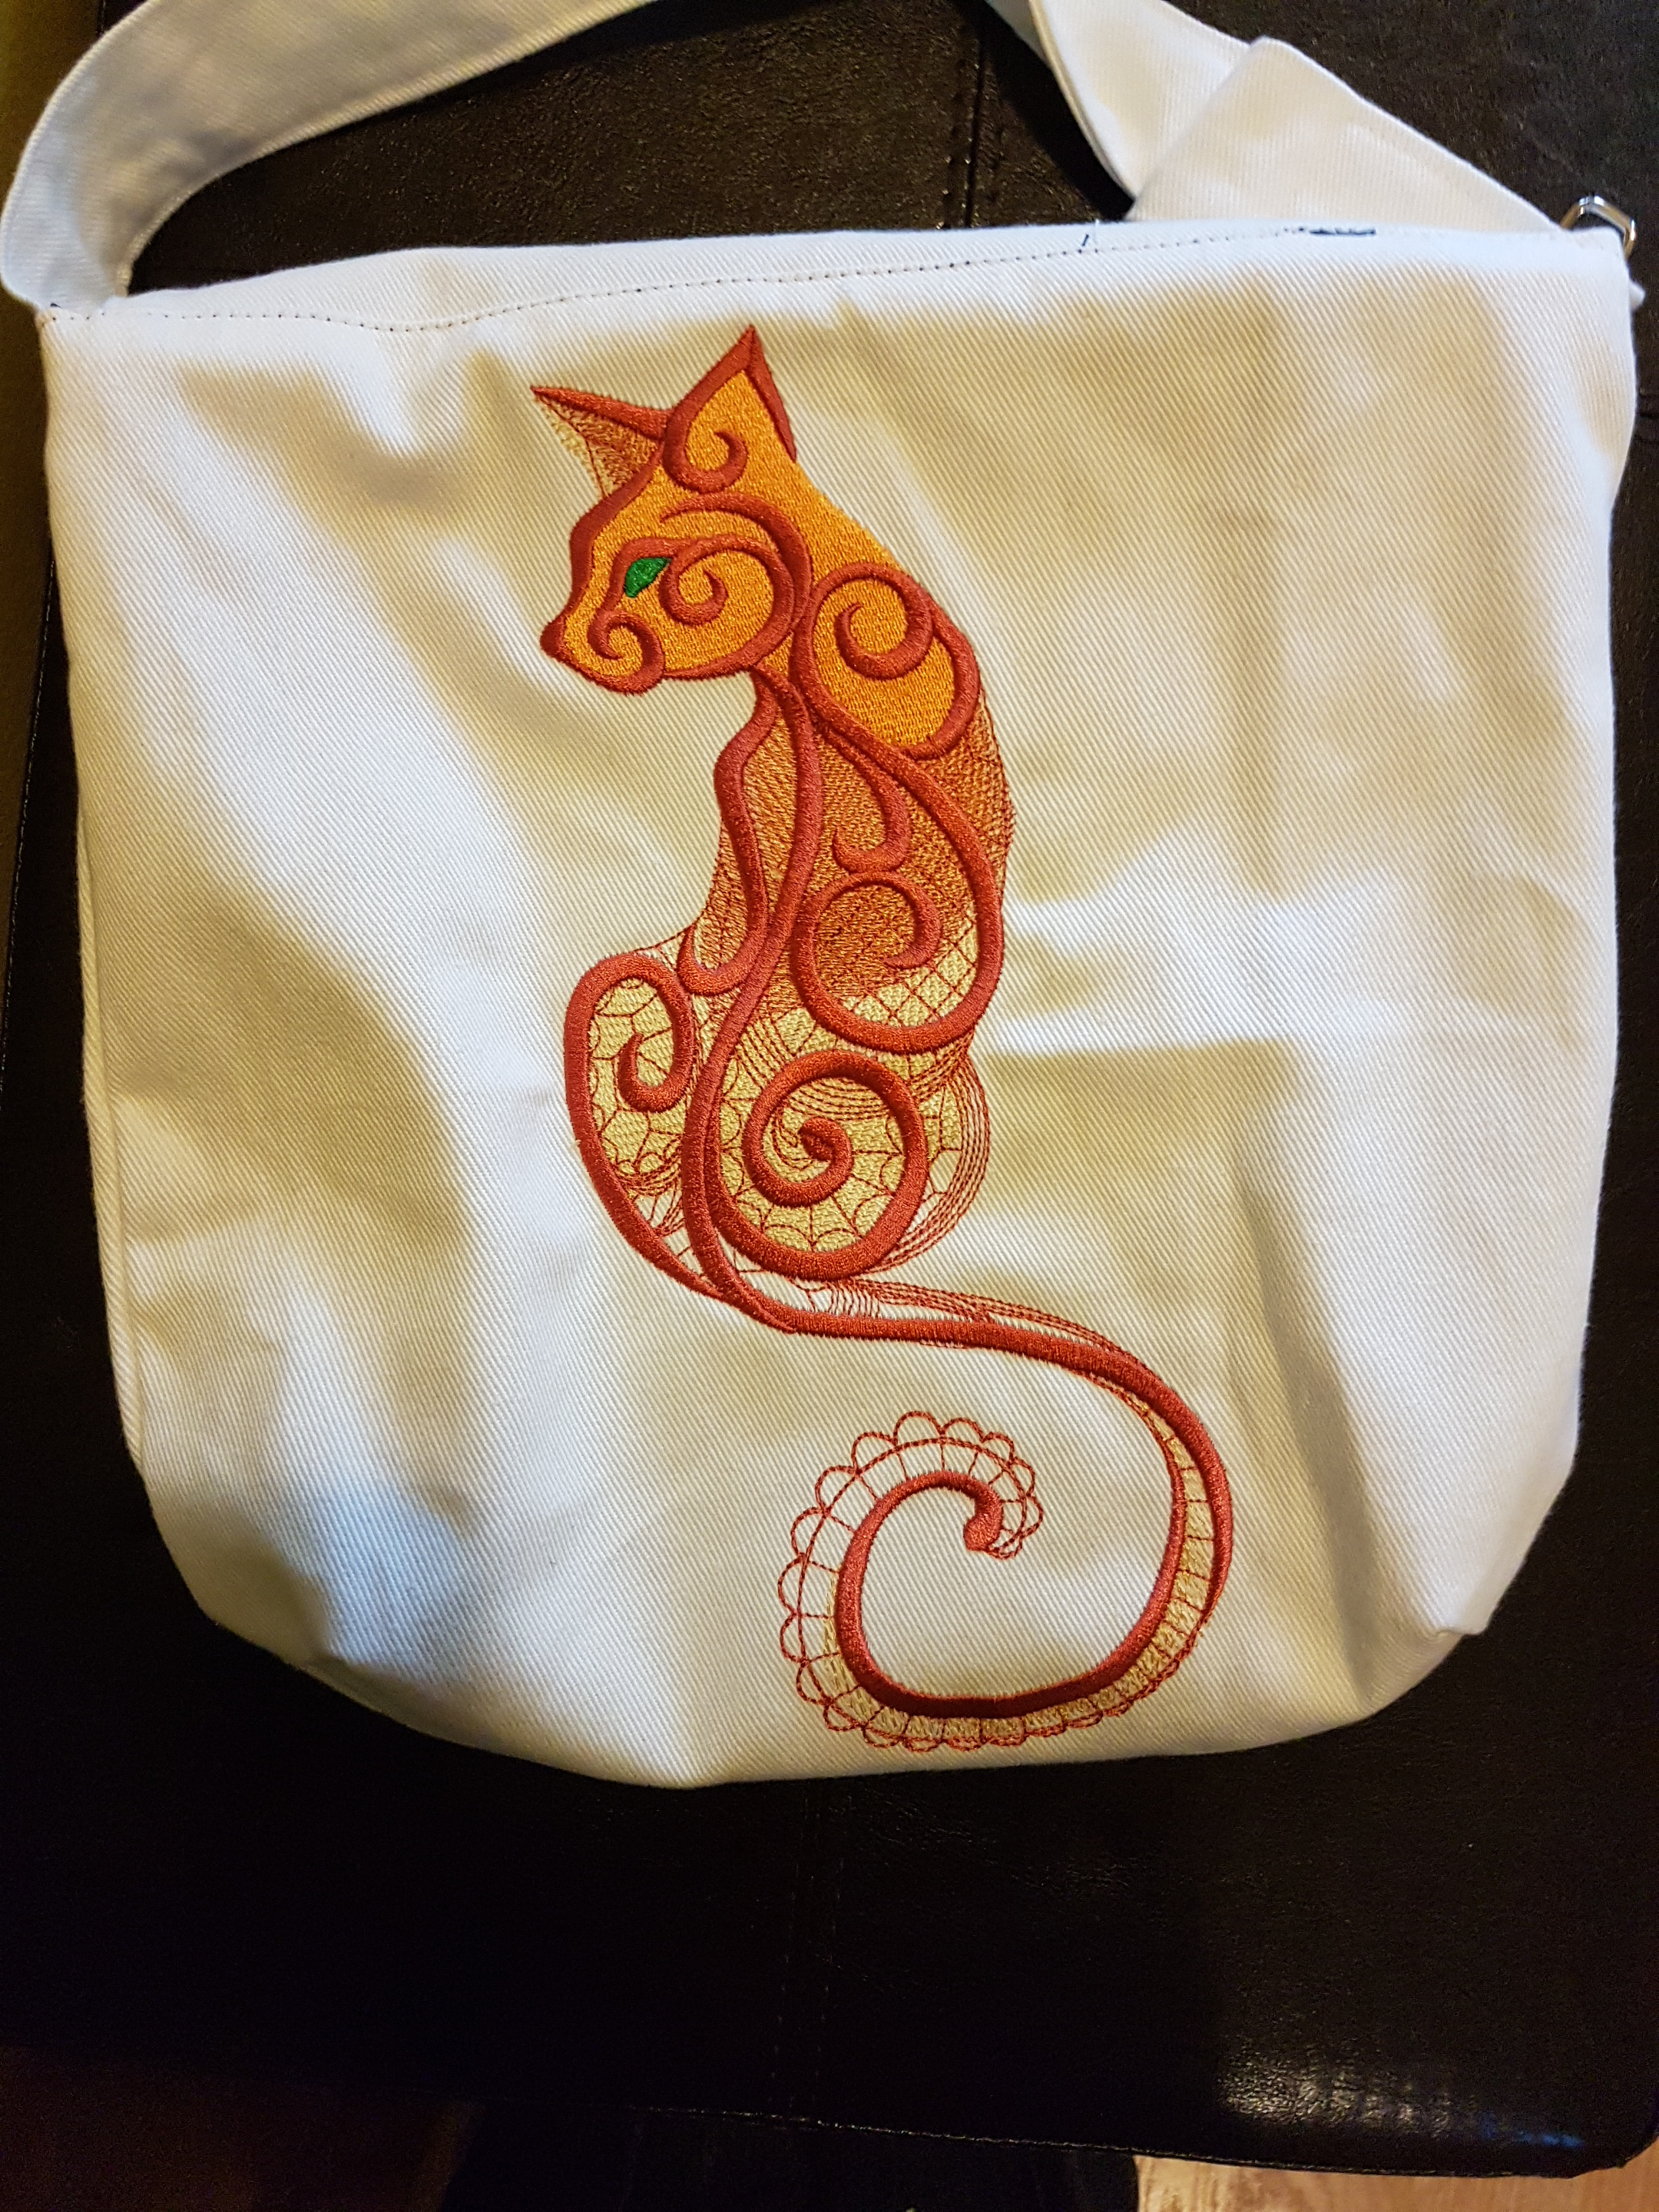 The back of the white canvas bag shows a fully-grown cat embroidered with gold, orange, and red thread. The cat's eyes are embroidered in green thread.